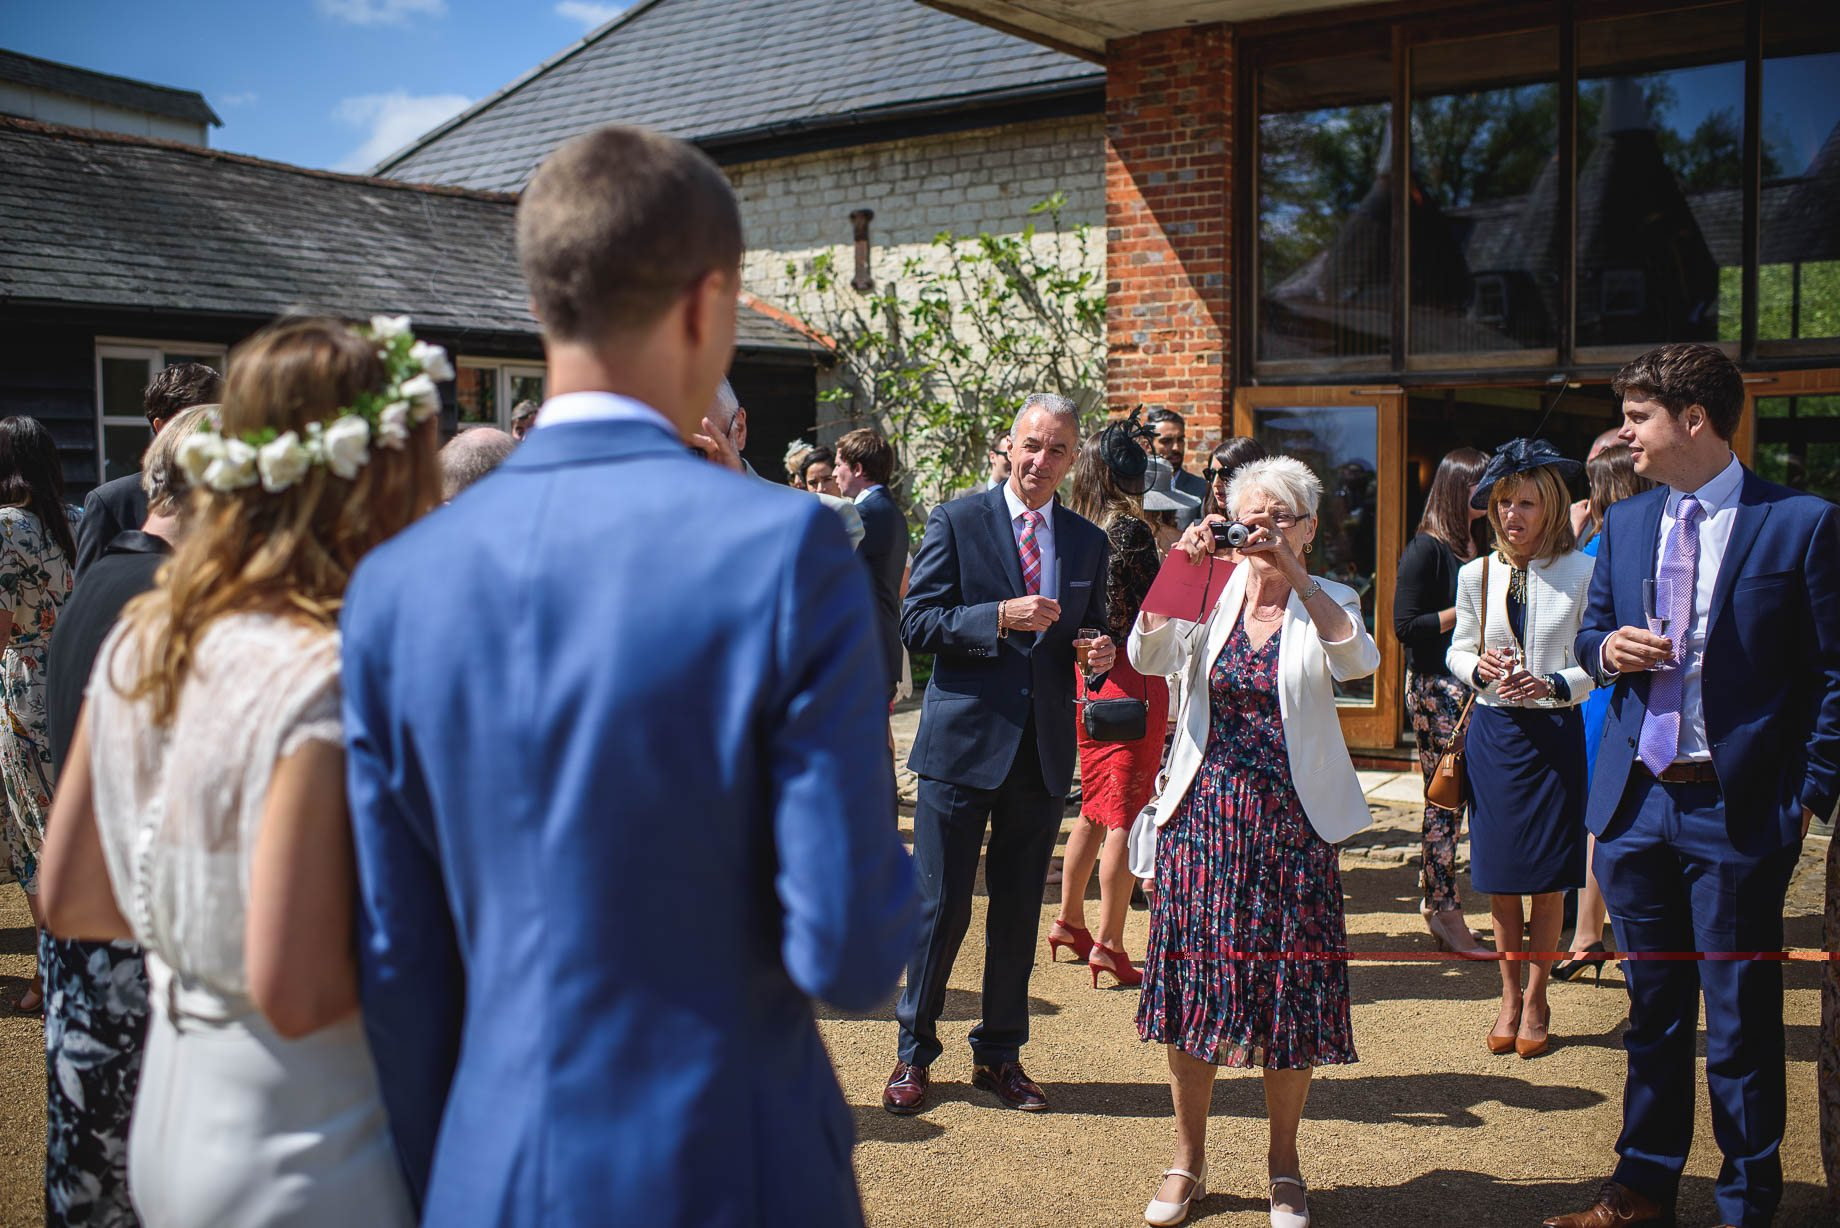 Bury Court Barn wedding photography by Guy Collier - Jo and Jamie (76 of 160)